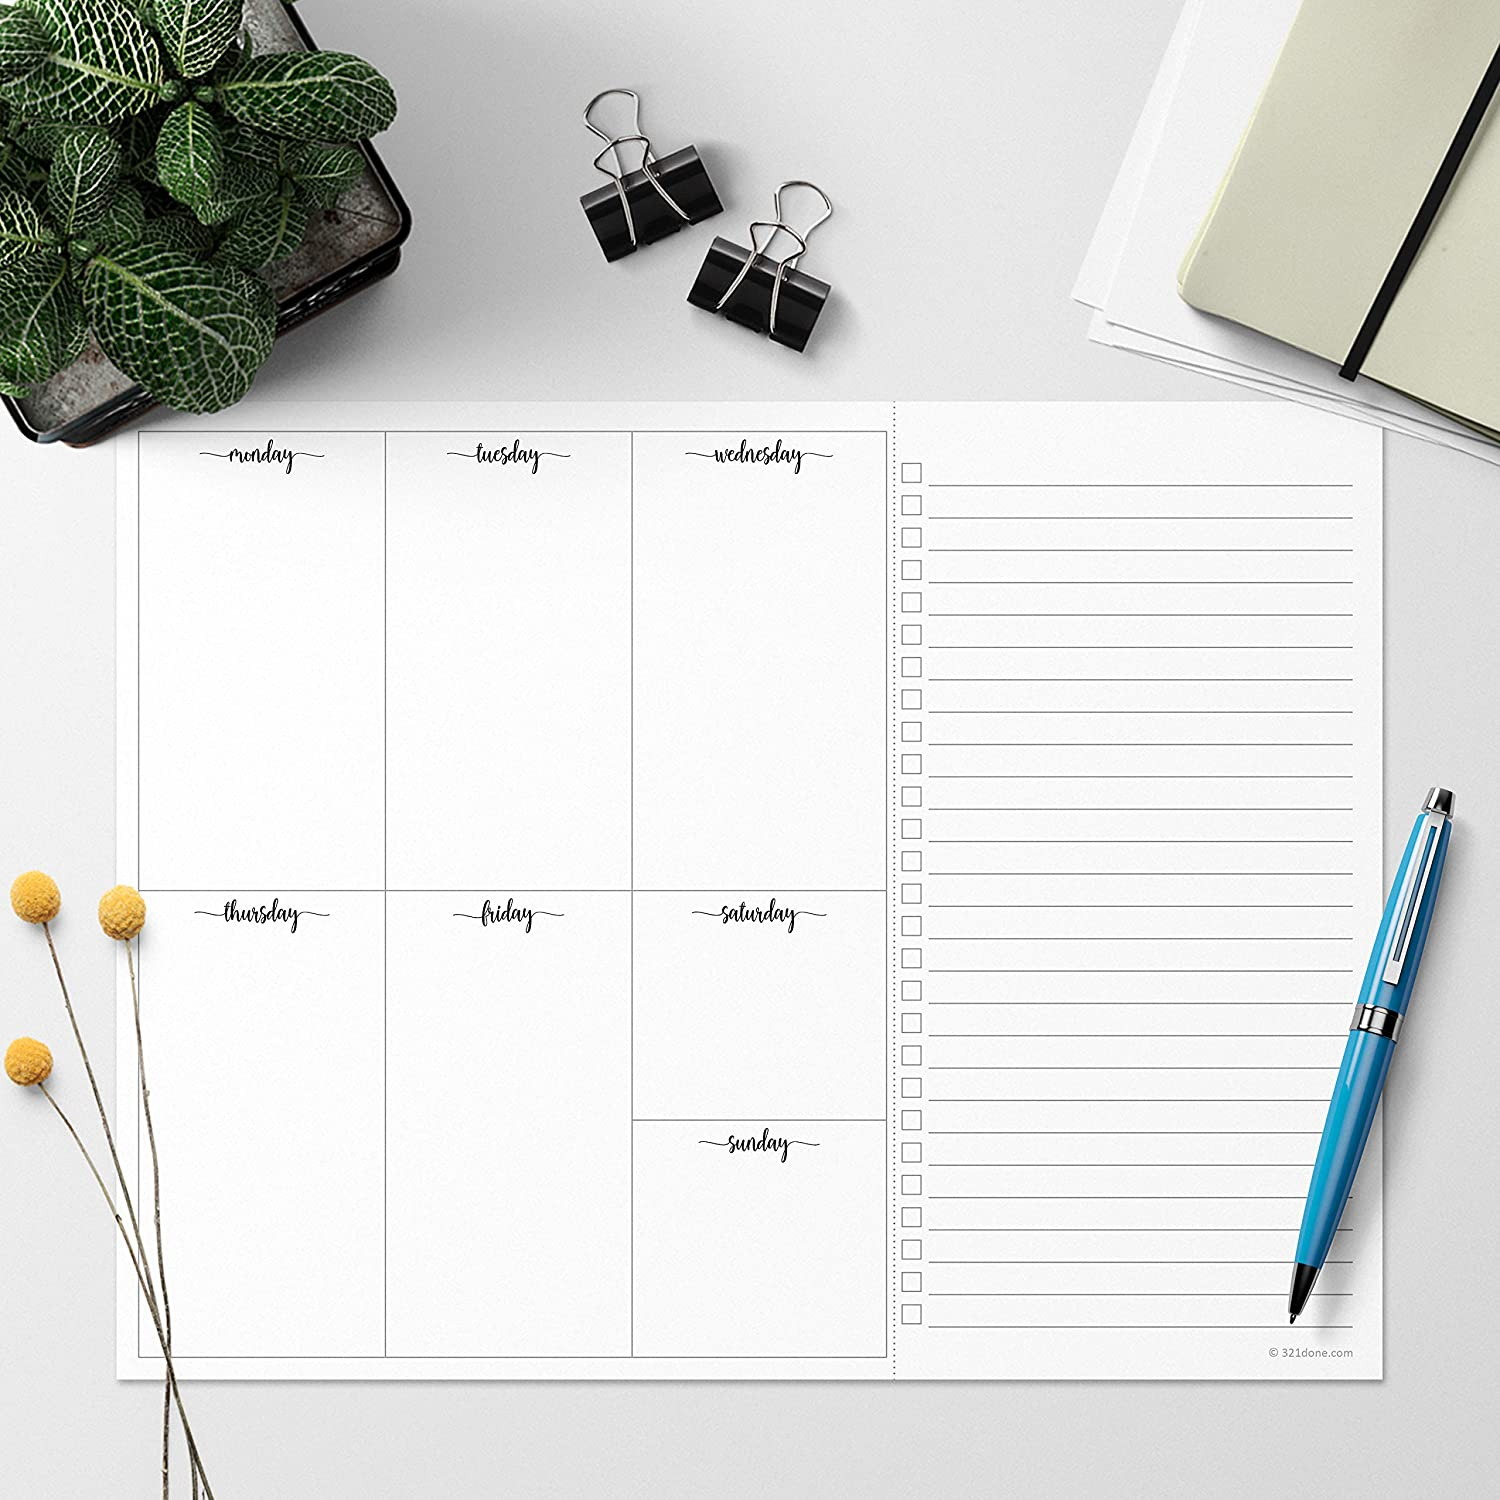 50 Sheets 8.5 x 11 Made in USA Perforated to Do Memo Pad 321Done Weekly Plan Checklist Notepad Minimalist